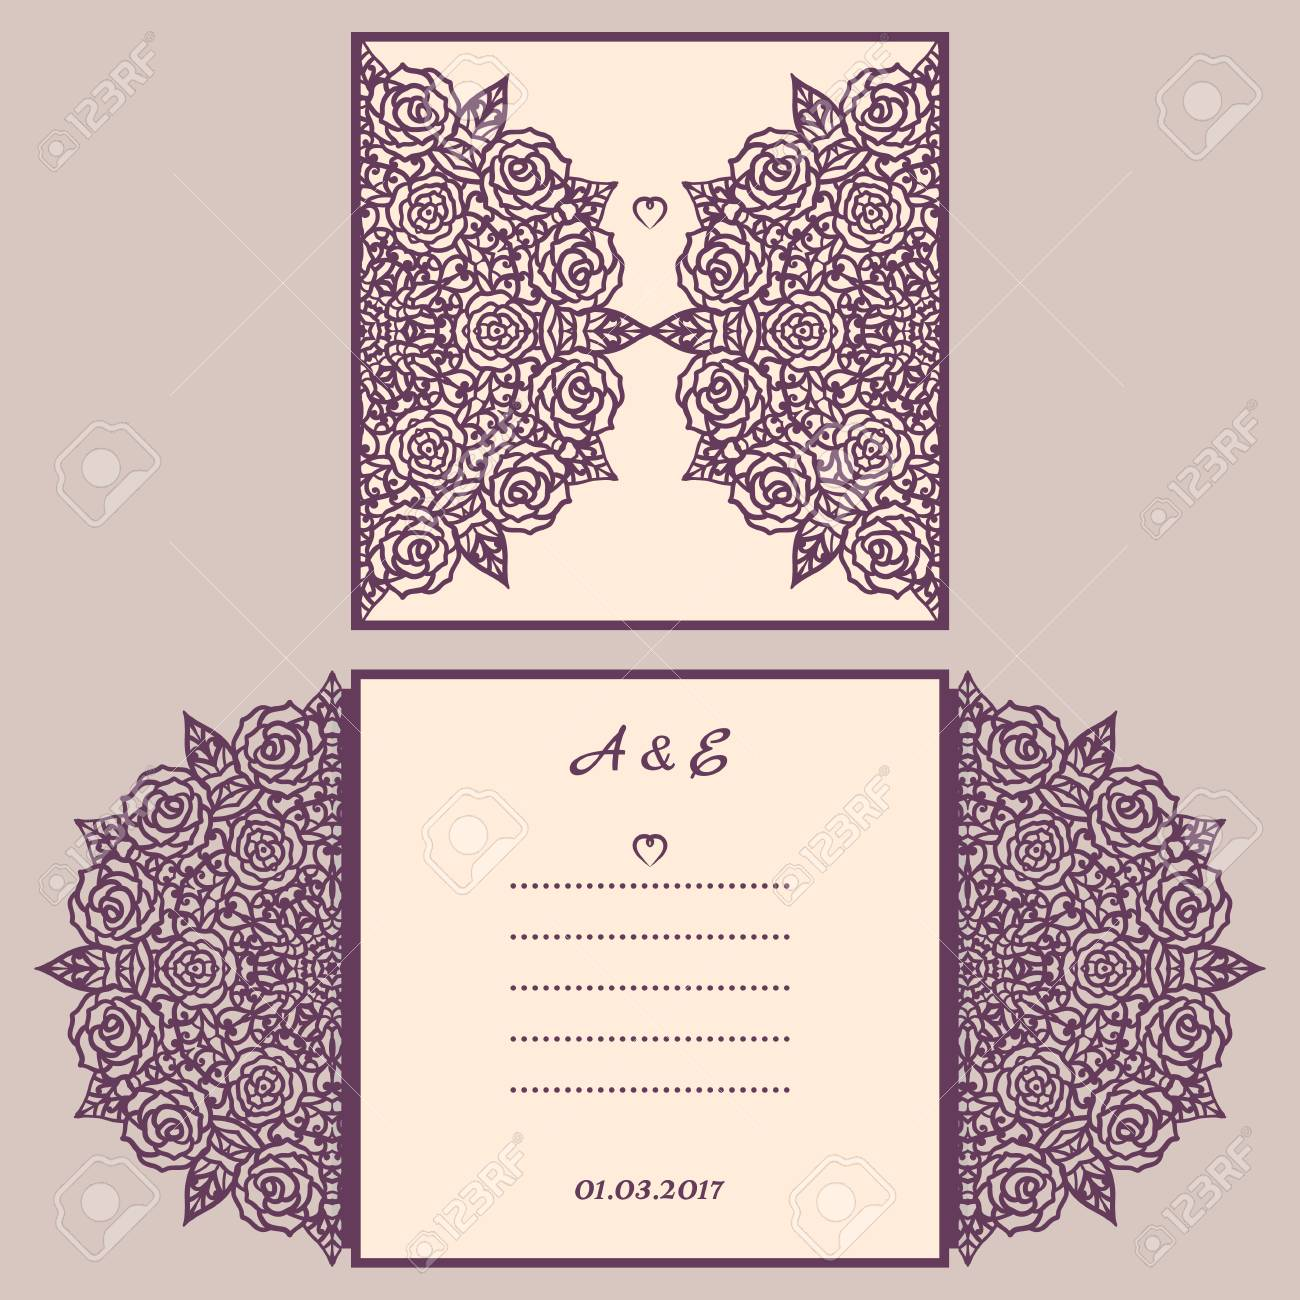 Abstract Wedding Cutout Invitation Template Suitable For Lasercutting Lazercut Lace